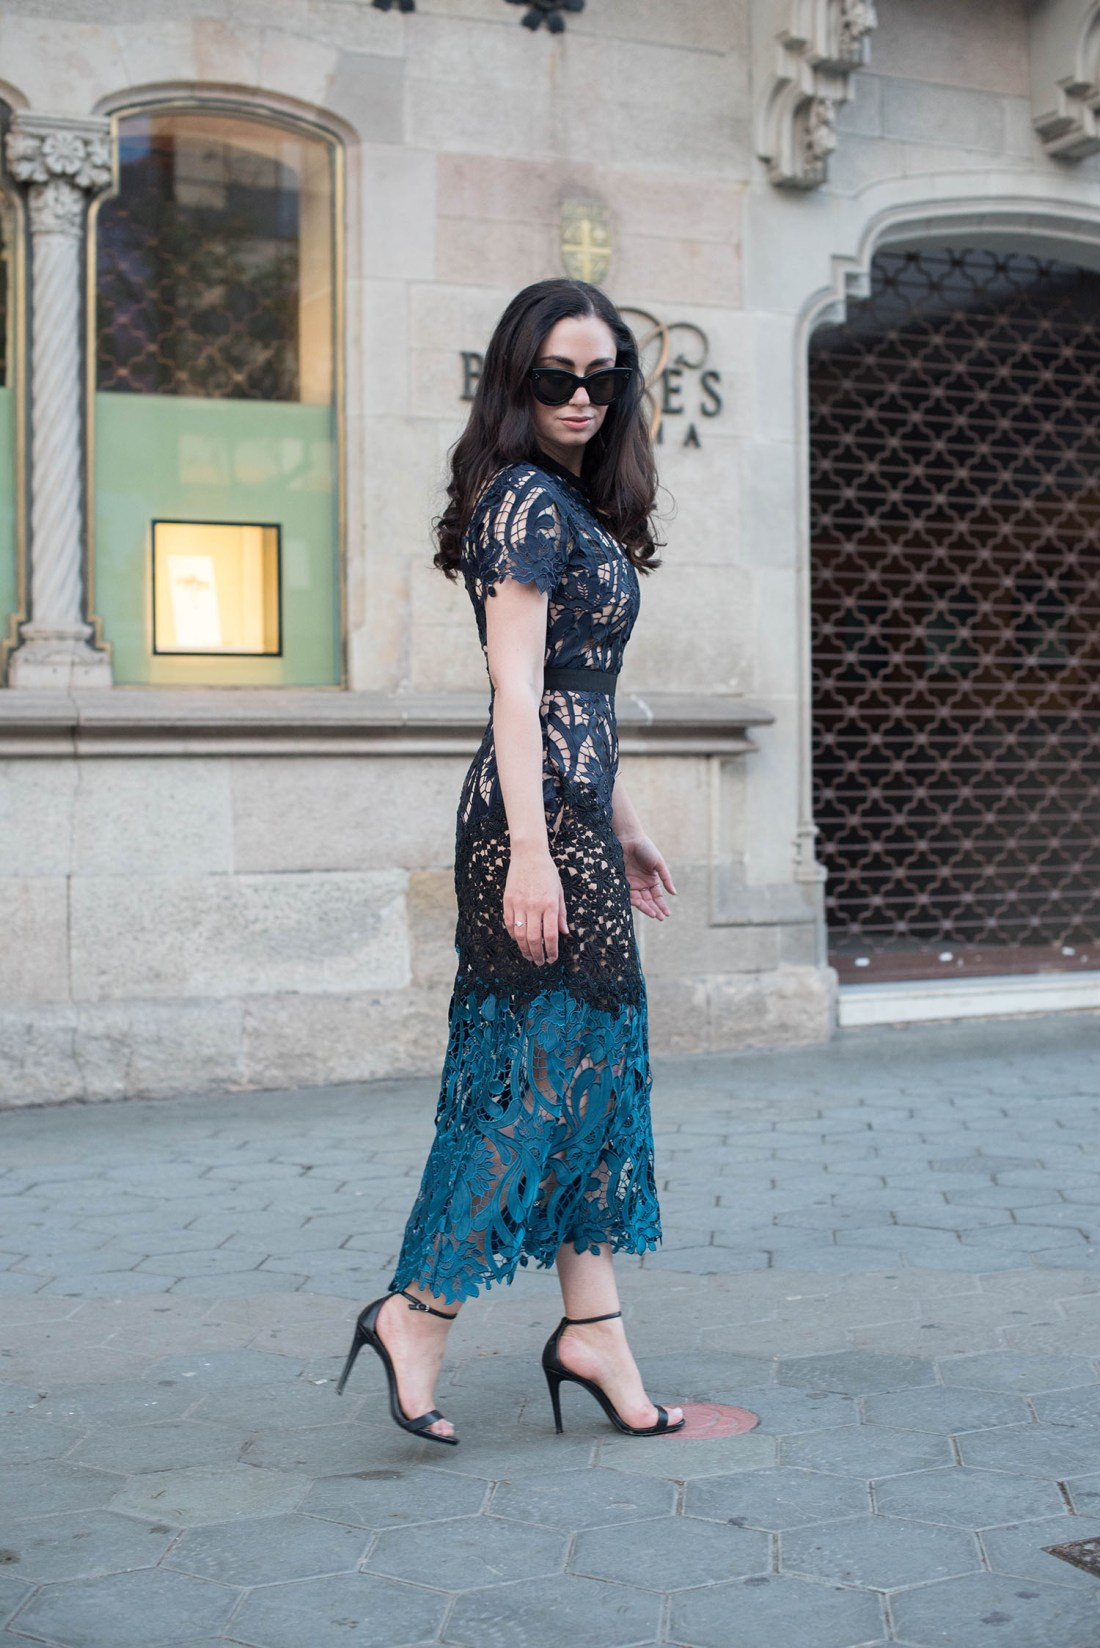 Canadian fashion blogger Cee Fardoe of Coco & Vera wears a Self-Portrait dress and Celine sunglasses in Barcelona